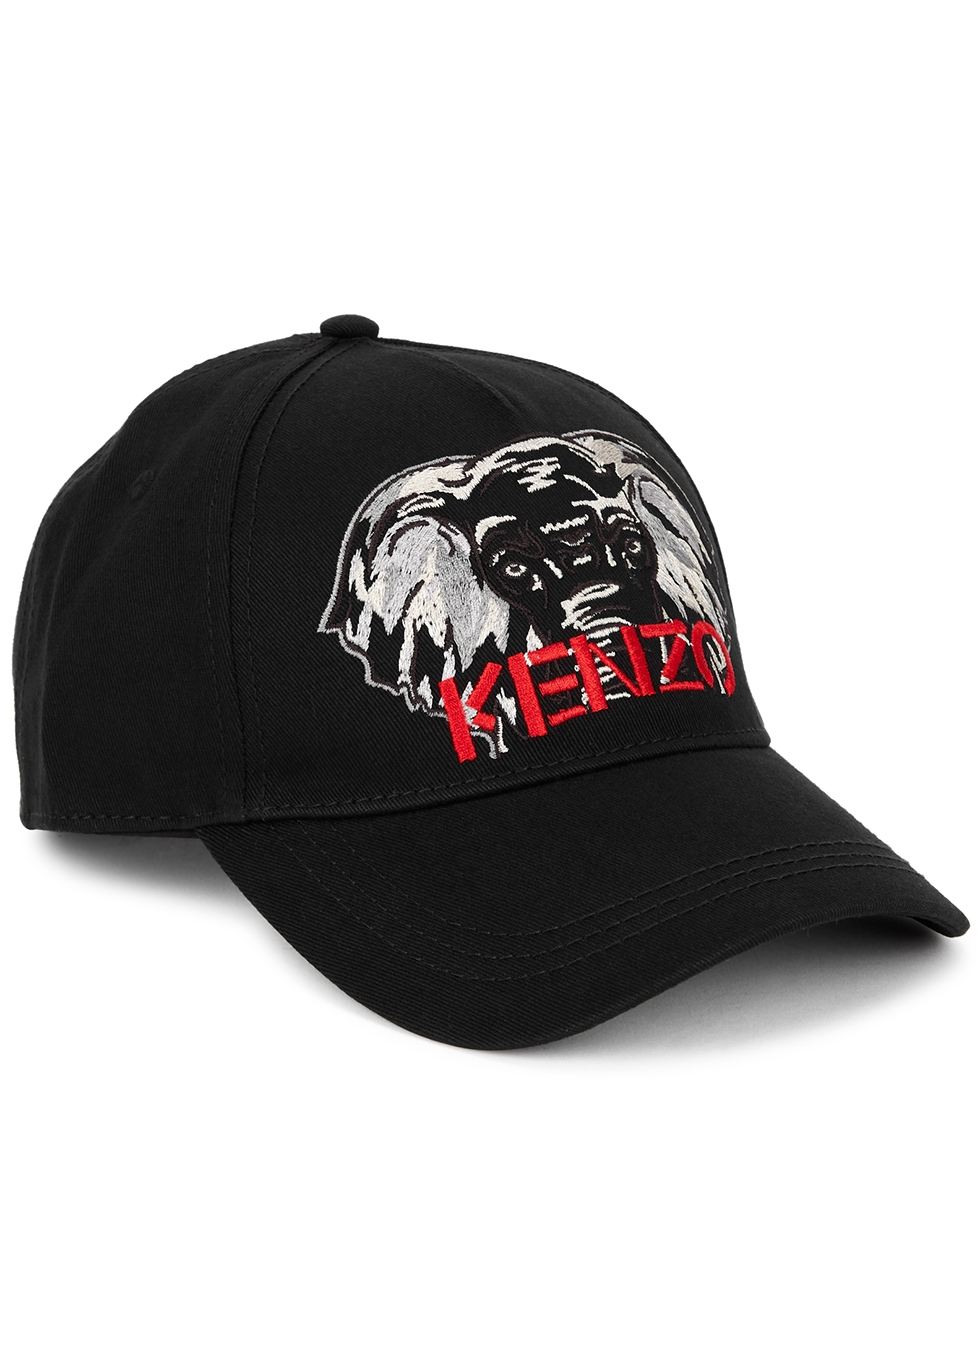 Kenzo logo-embroidered twill cap (large)